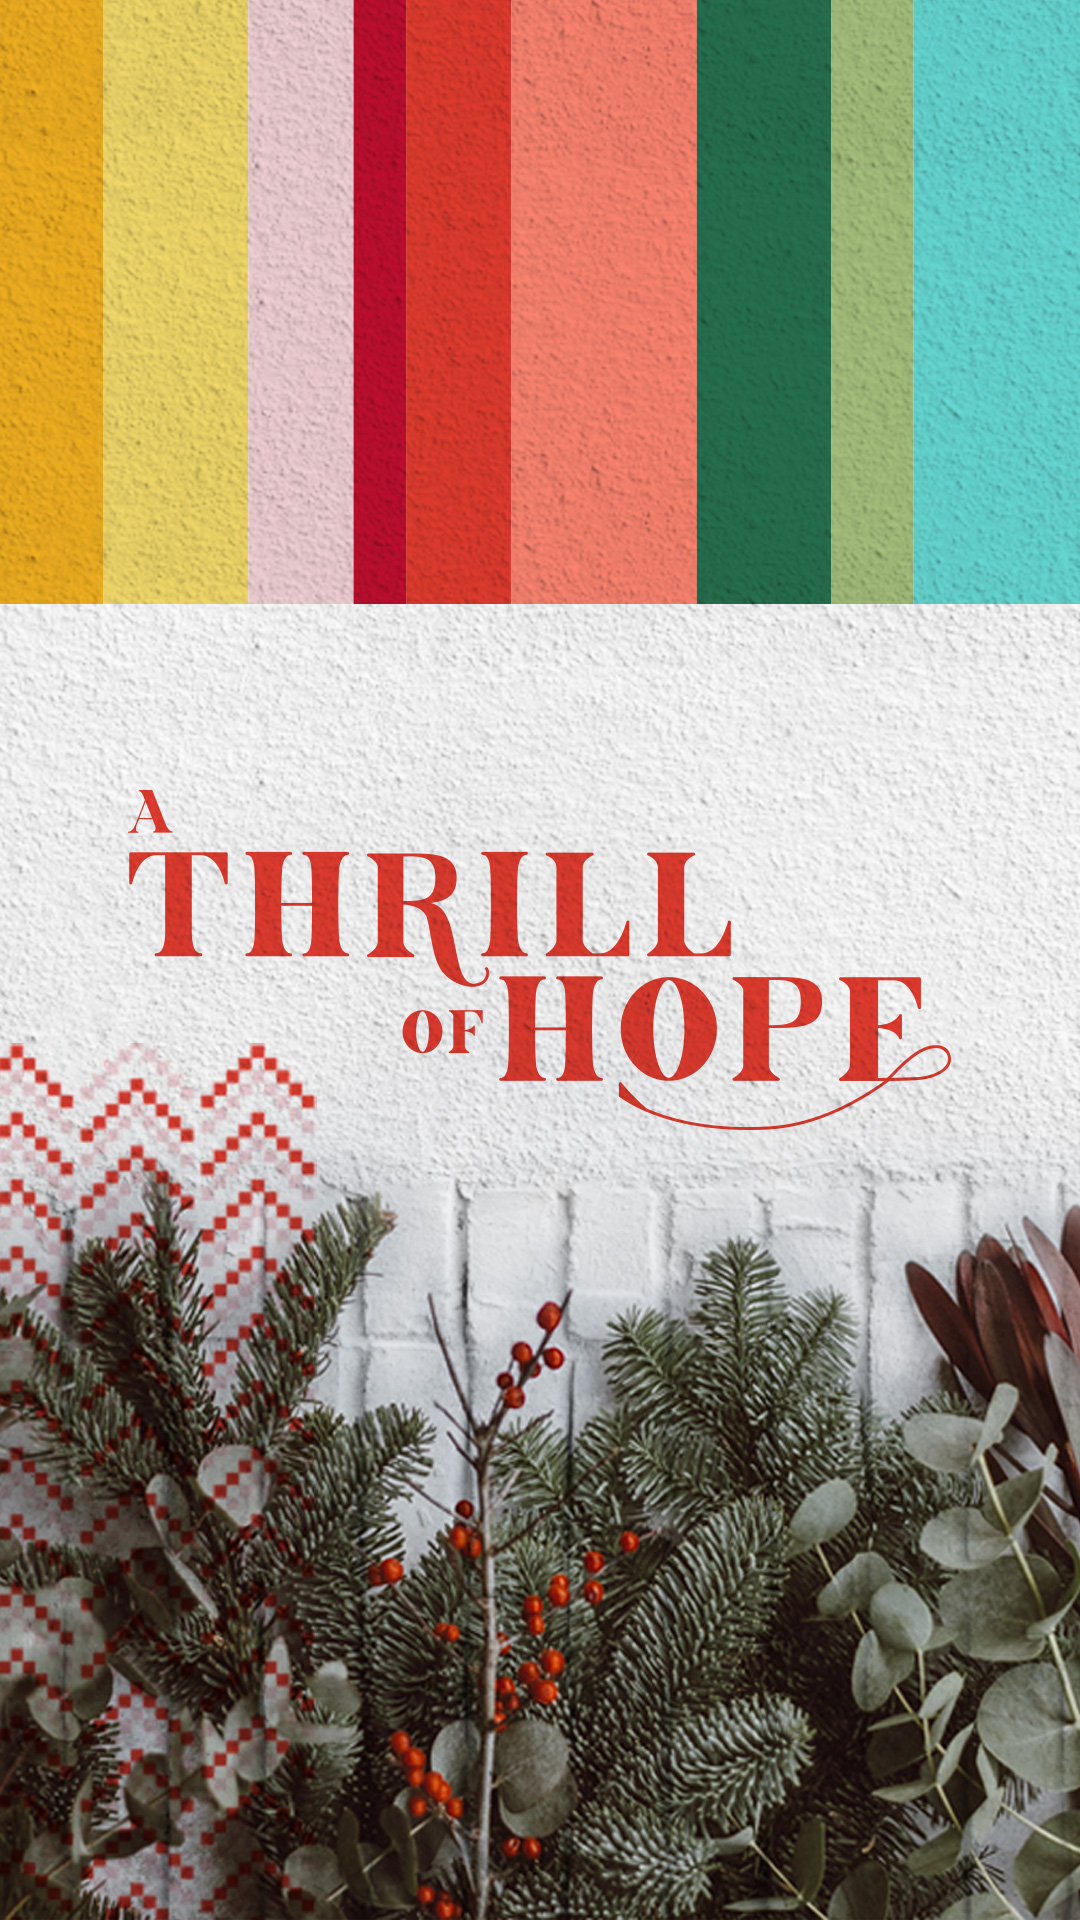 A Thrill of Hope Shareable Instagram Story 1